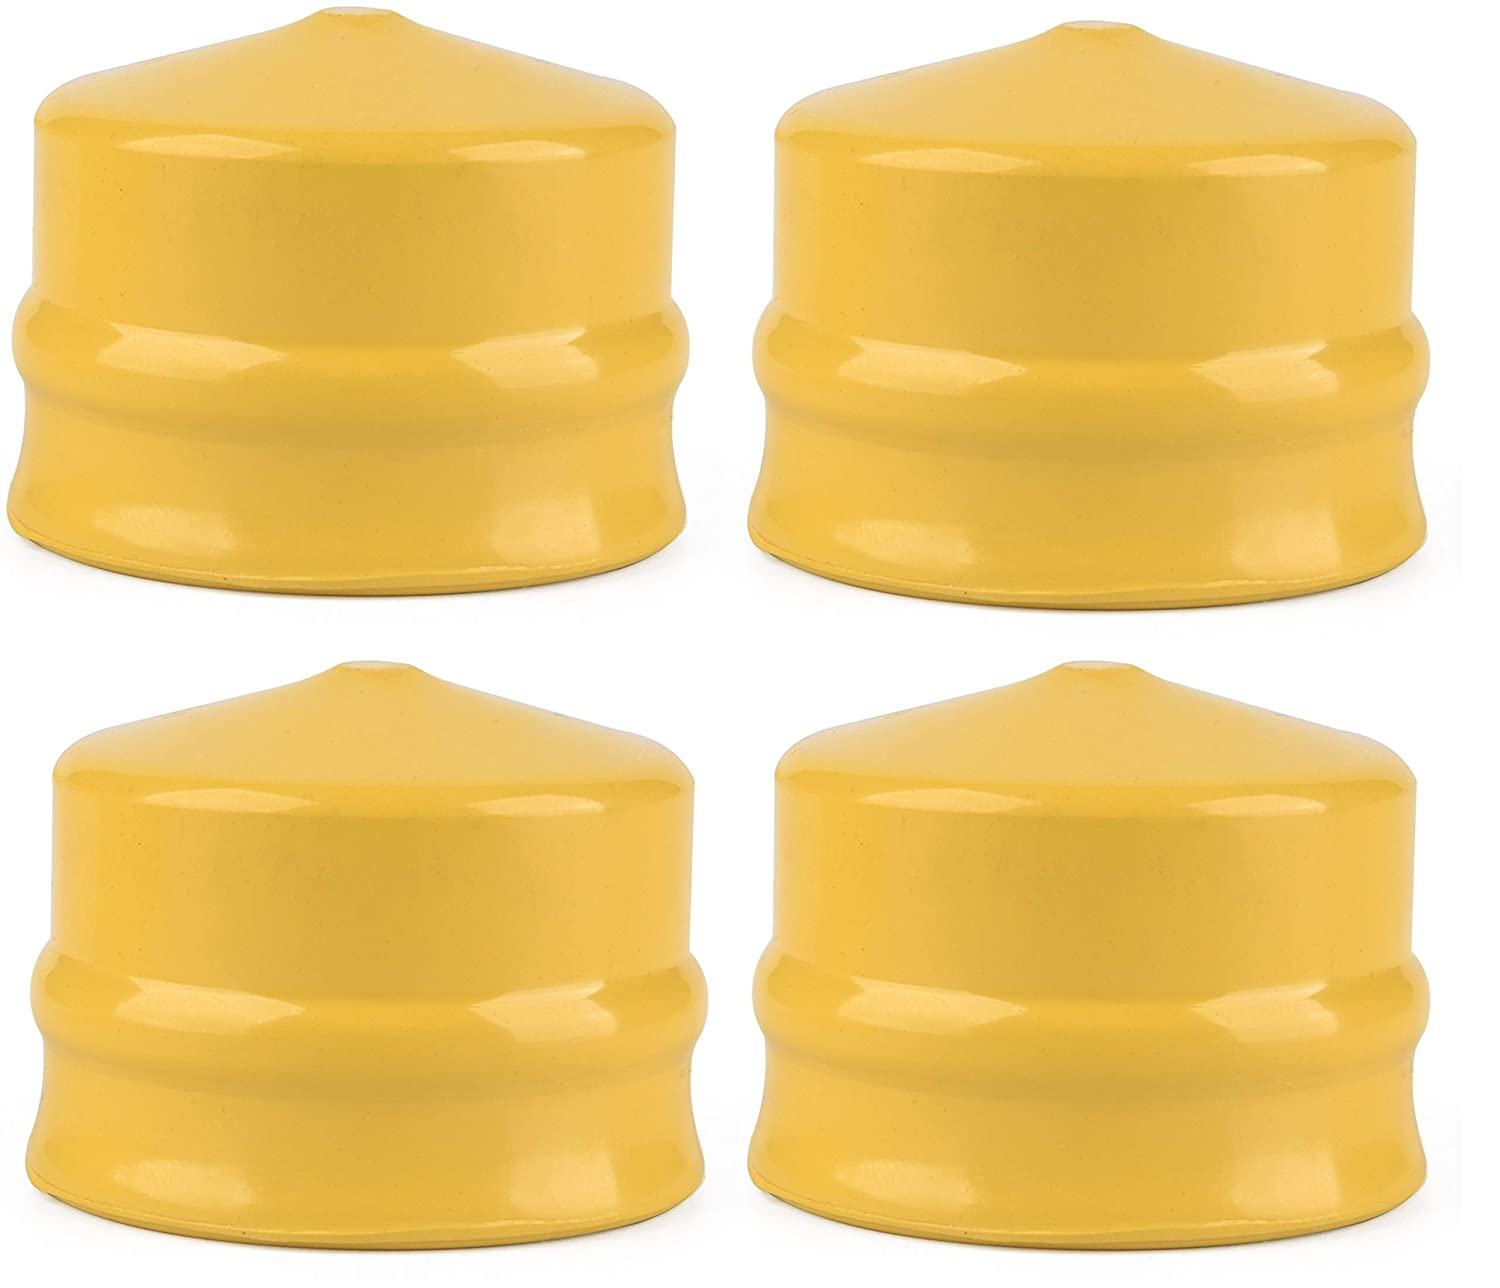 Mission Automotive 4-Pack Axle Cap Bearing Cover - Compatible with John Deere - for Lawn Mower and Lawn Tractor- Compare to M143338